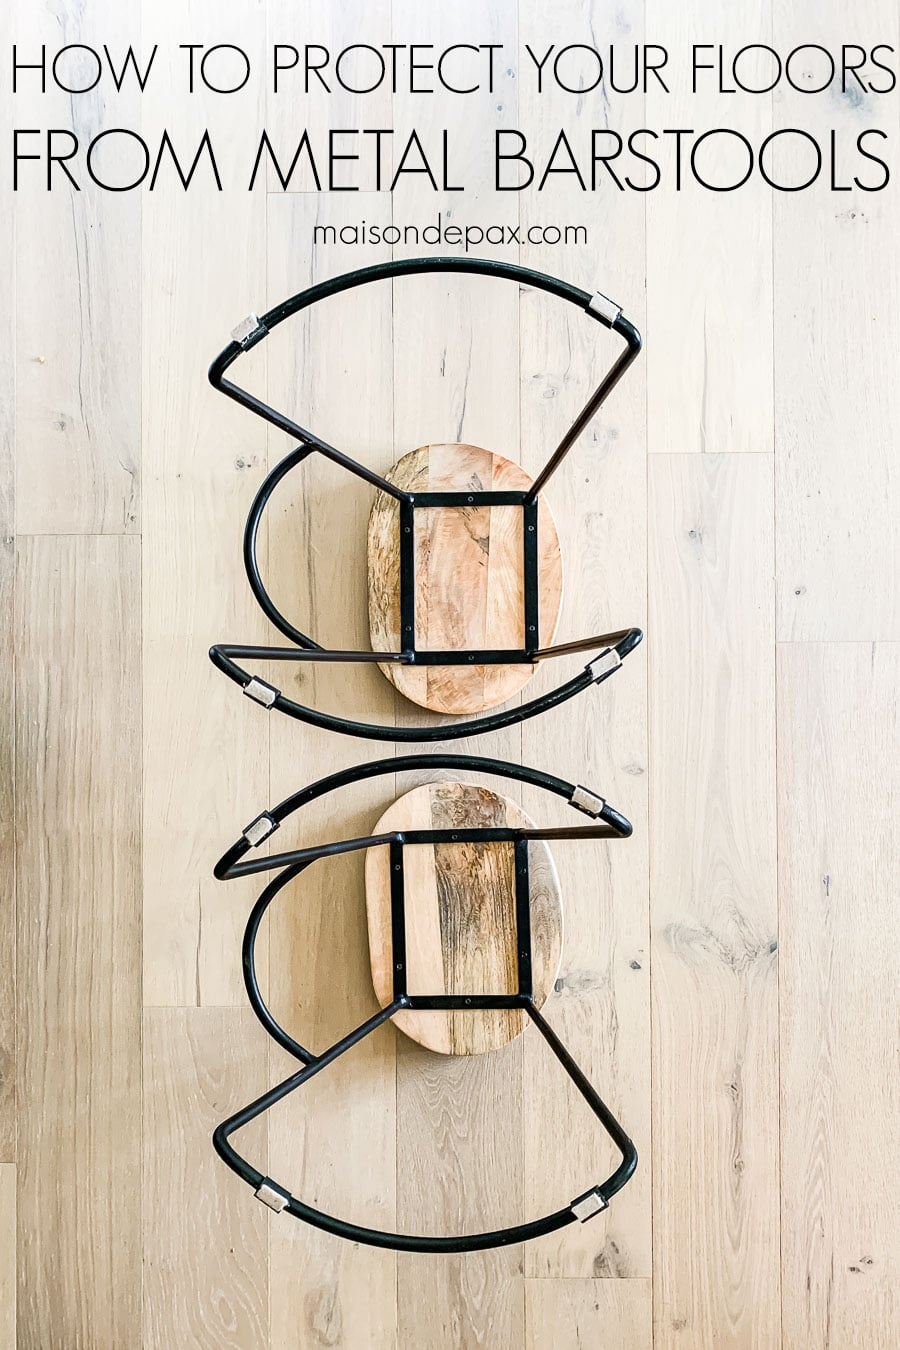 barstools with wood tops and metal legs with floor protection | Maison de Pax